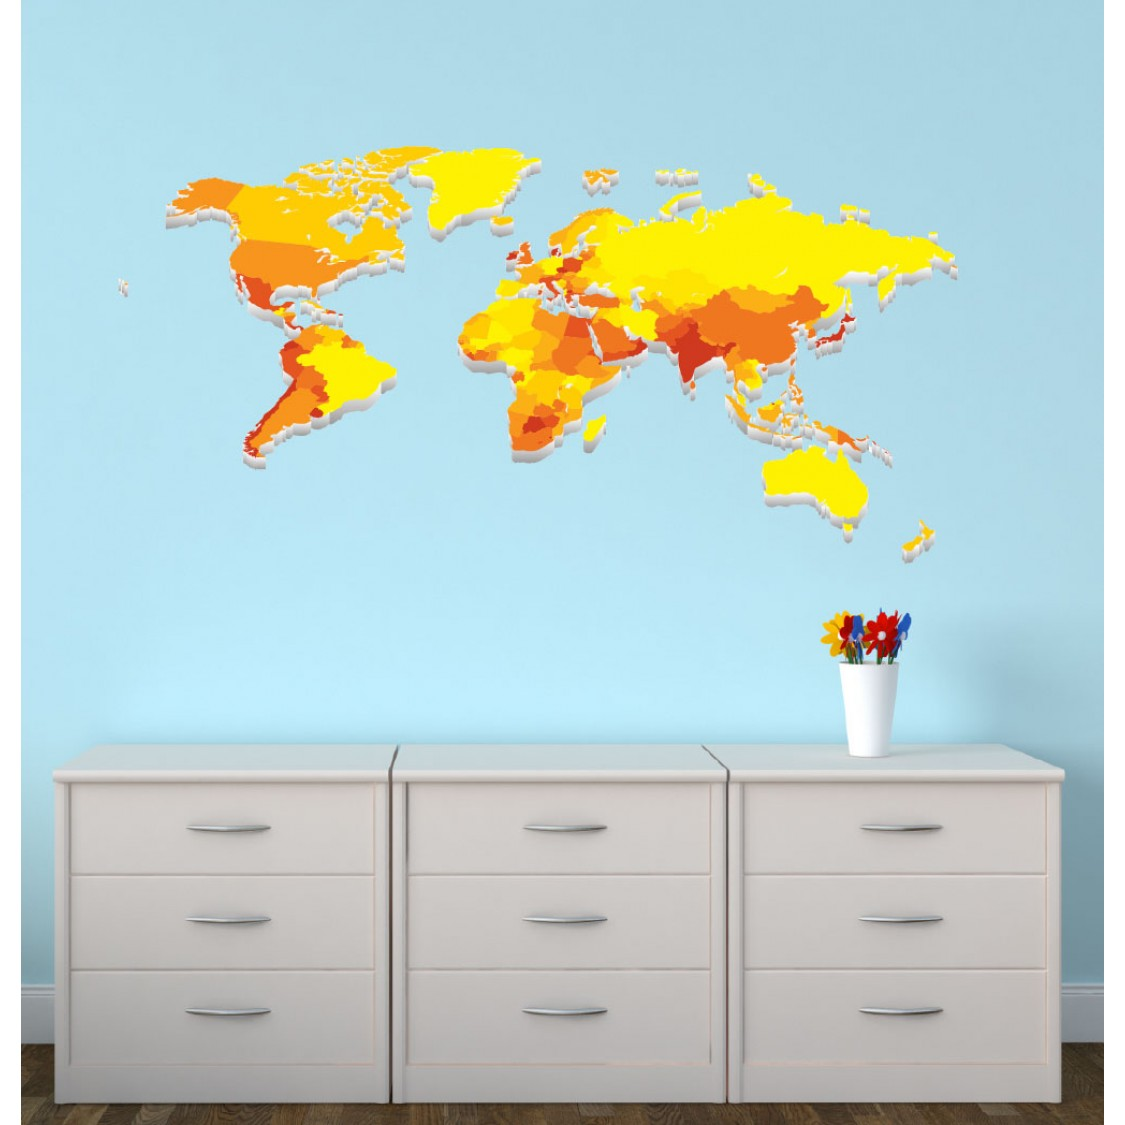 Wall Stickers For Bedrooms With Yellow World Map Decal For Kids Rooms